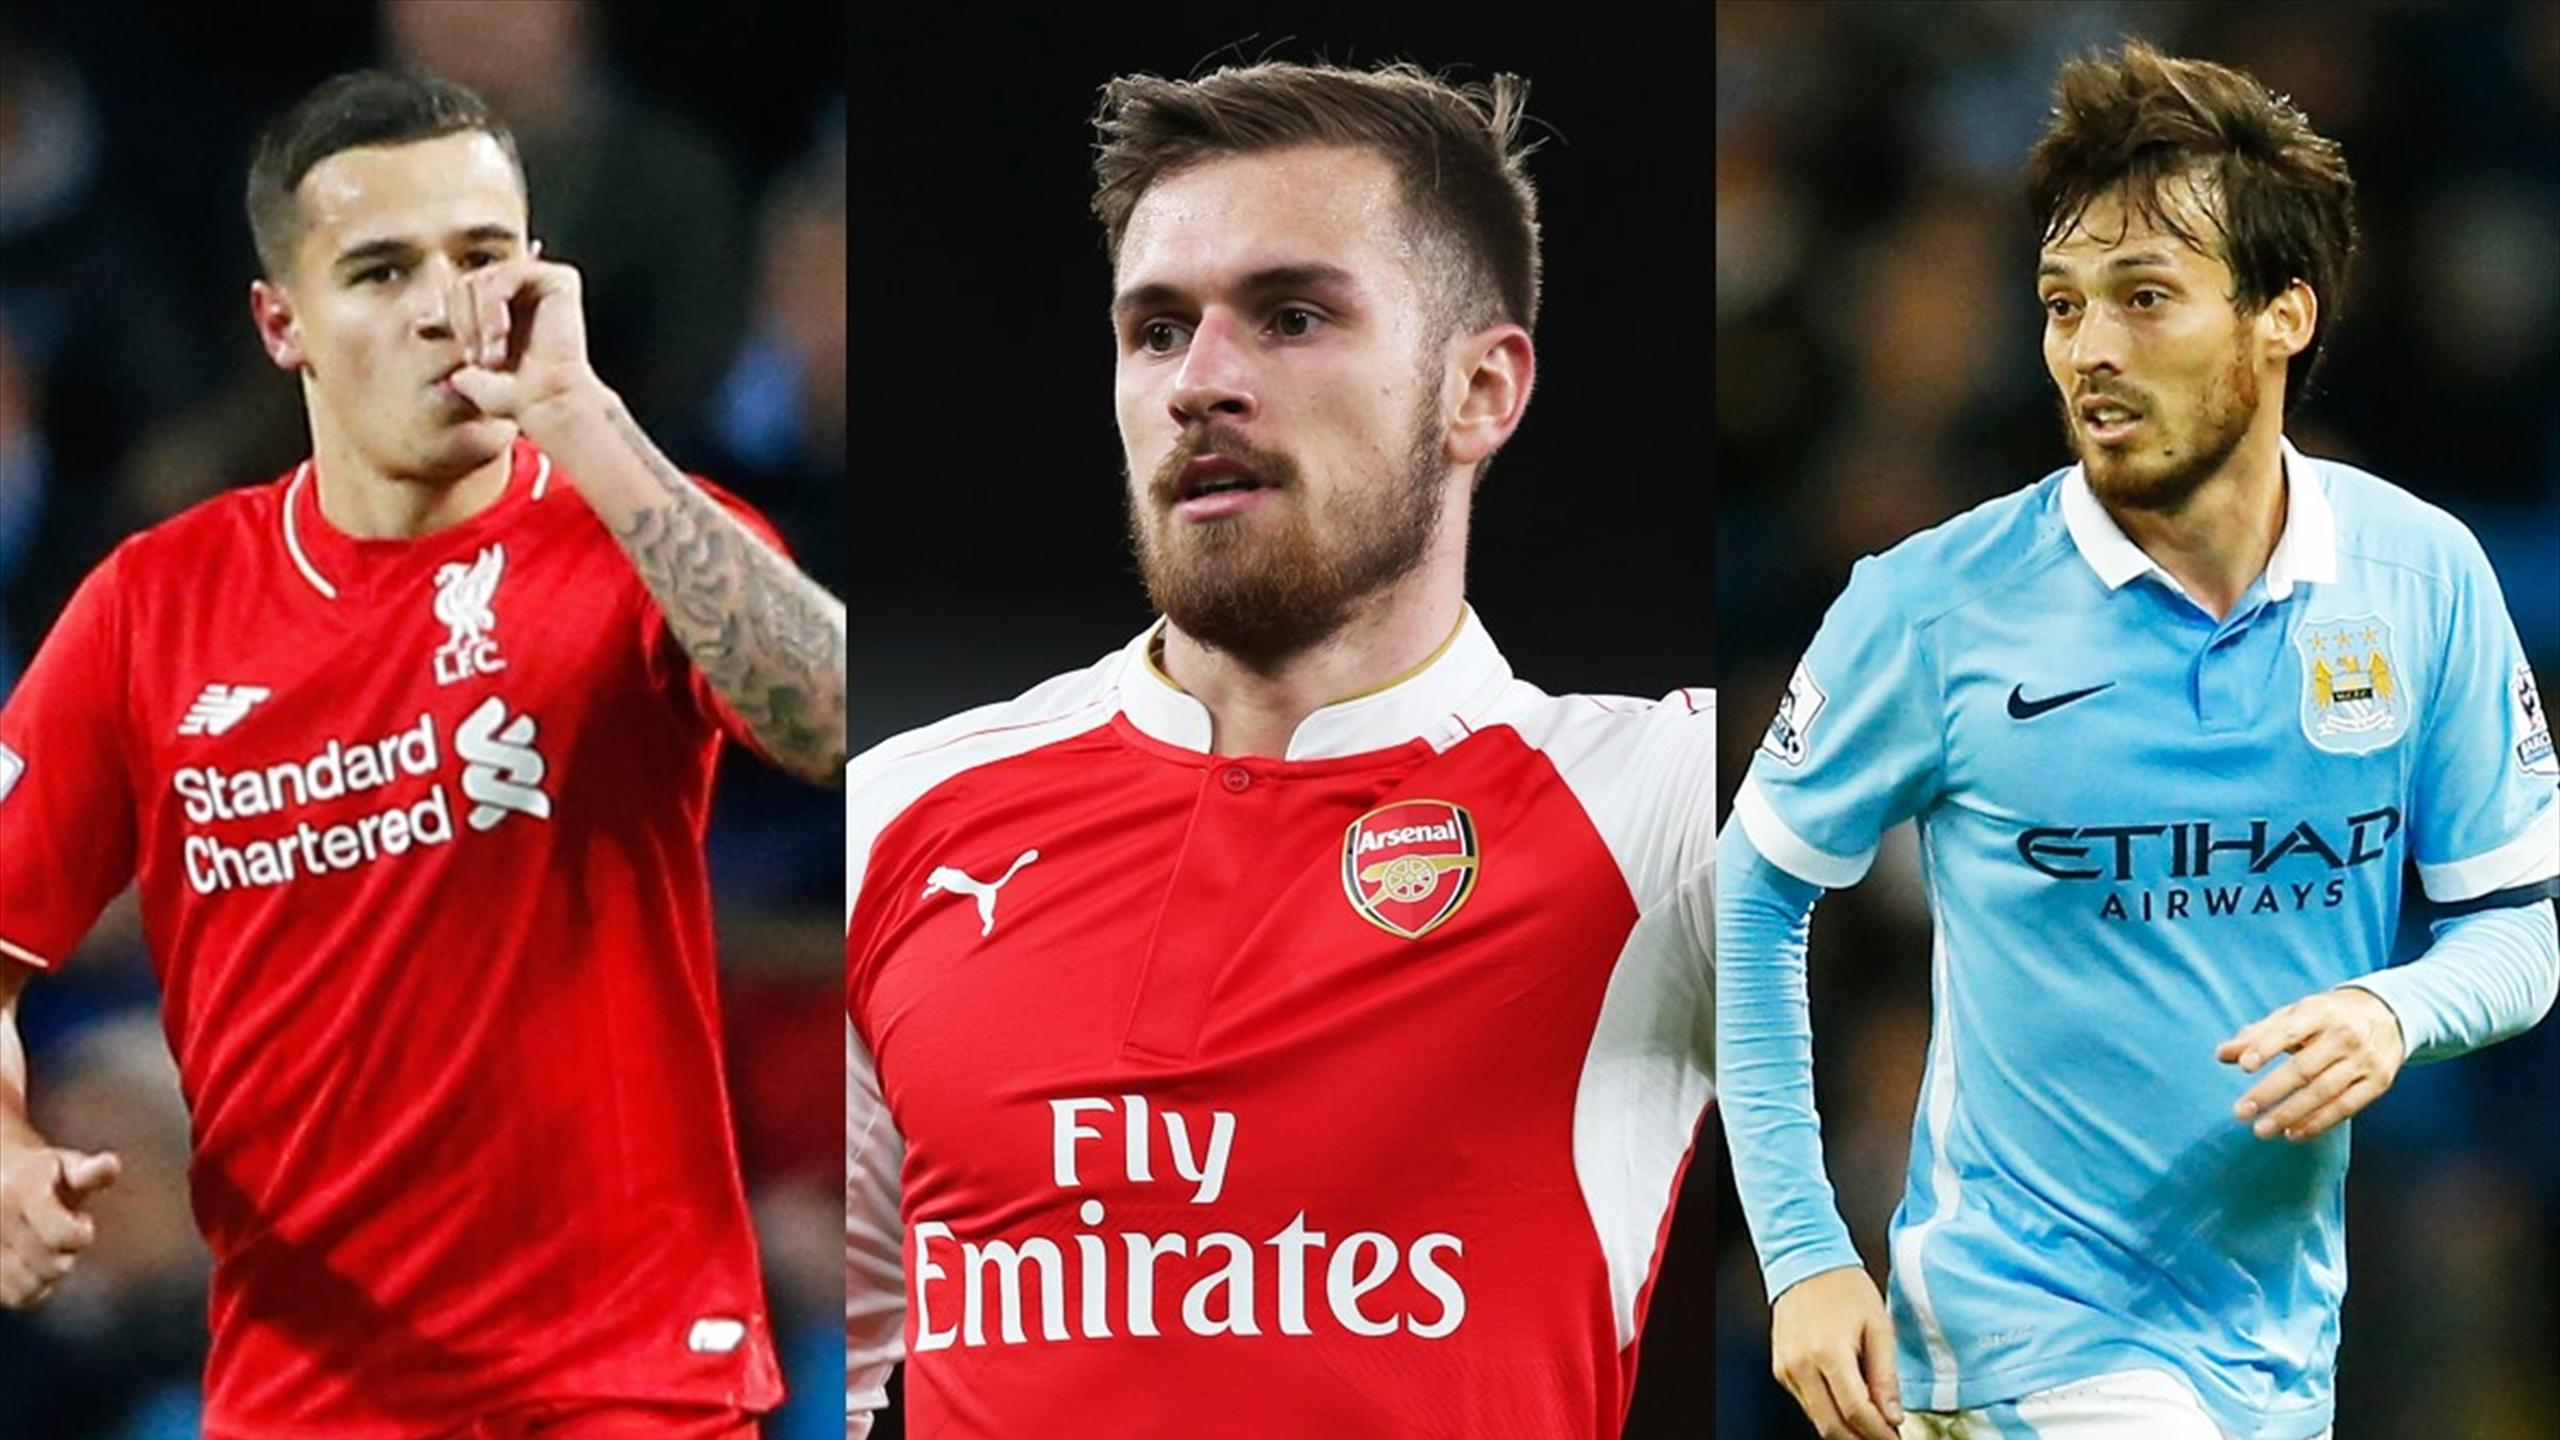 Liverpool's Philippe Coutinho, Arsenal's Aaron Ramsey and Manchester City's David Silva